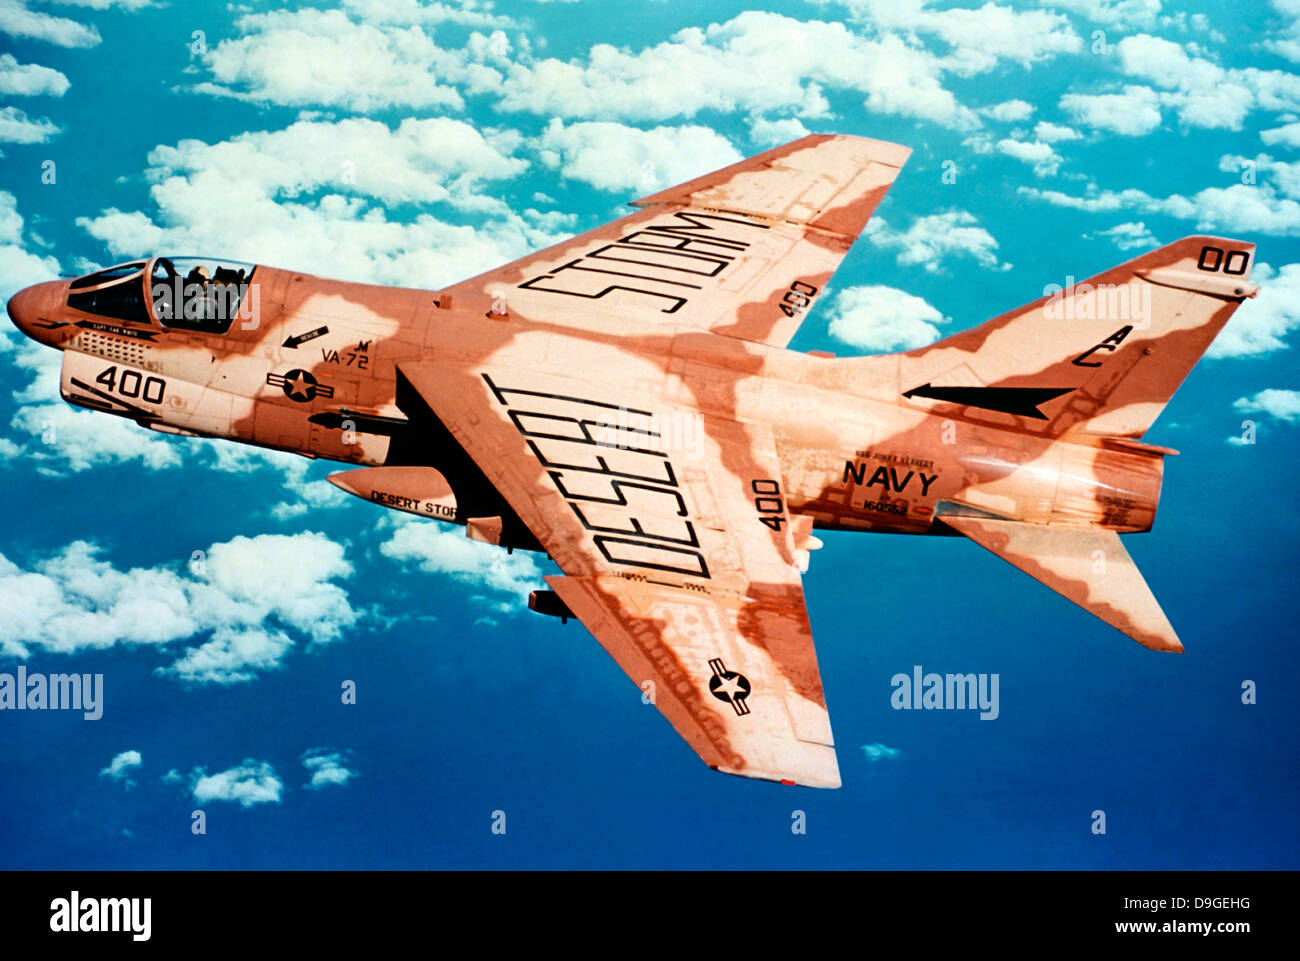 An A-7 Corsair II attack aircraft in flight during Operation Desert Storm. - Stock Image